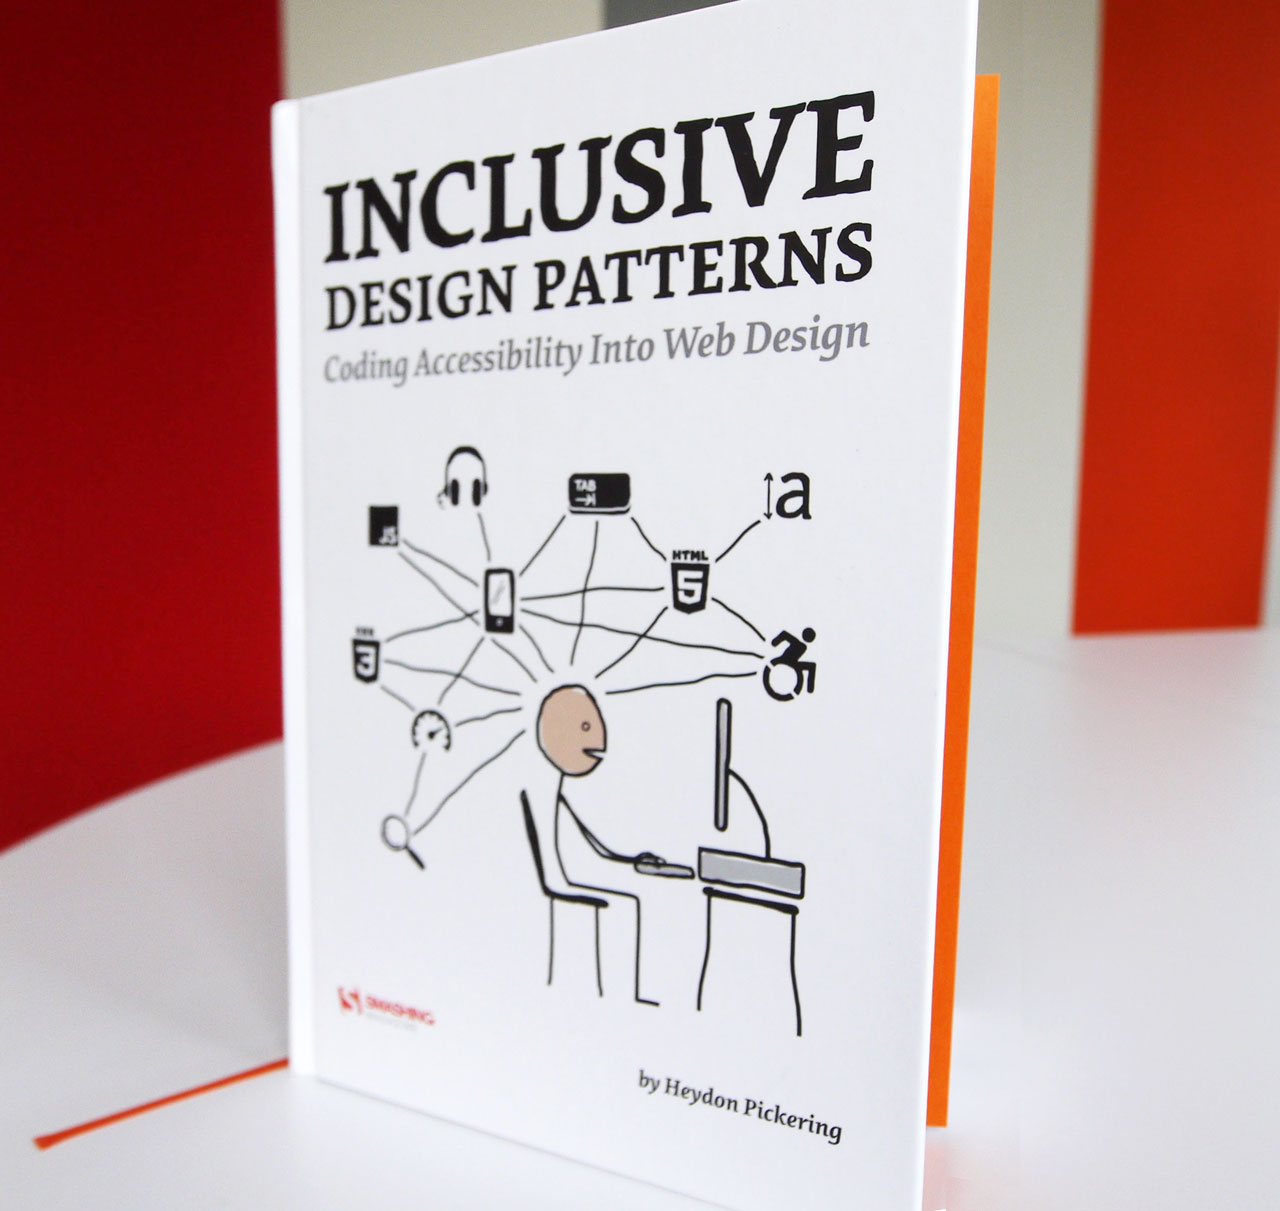 Get the new Inclusive Design Patterns Book by Heydon Pickering. Meet  Inclusive Front End Design Patterns   A New Smashing Book